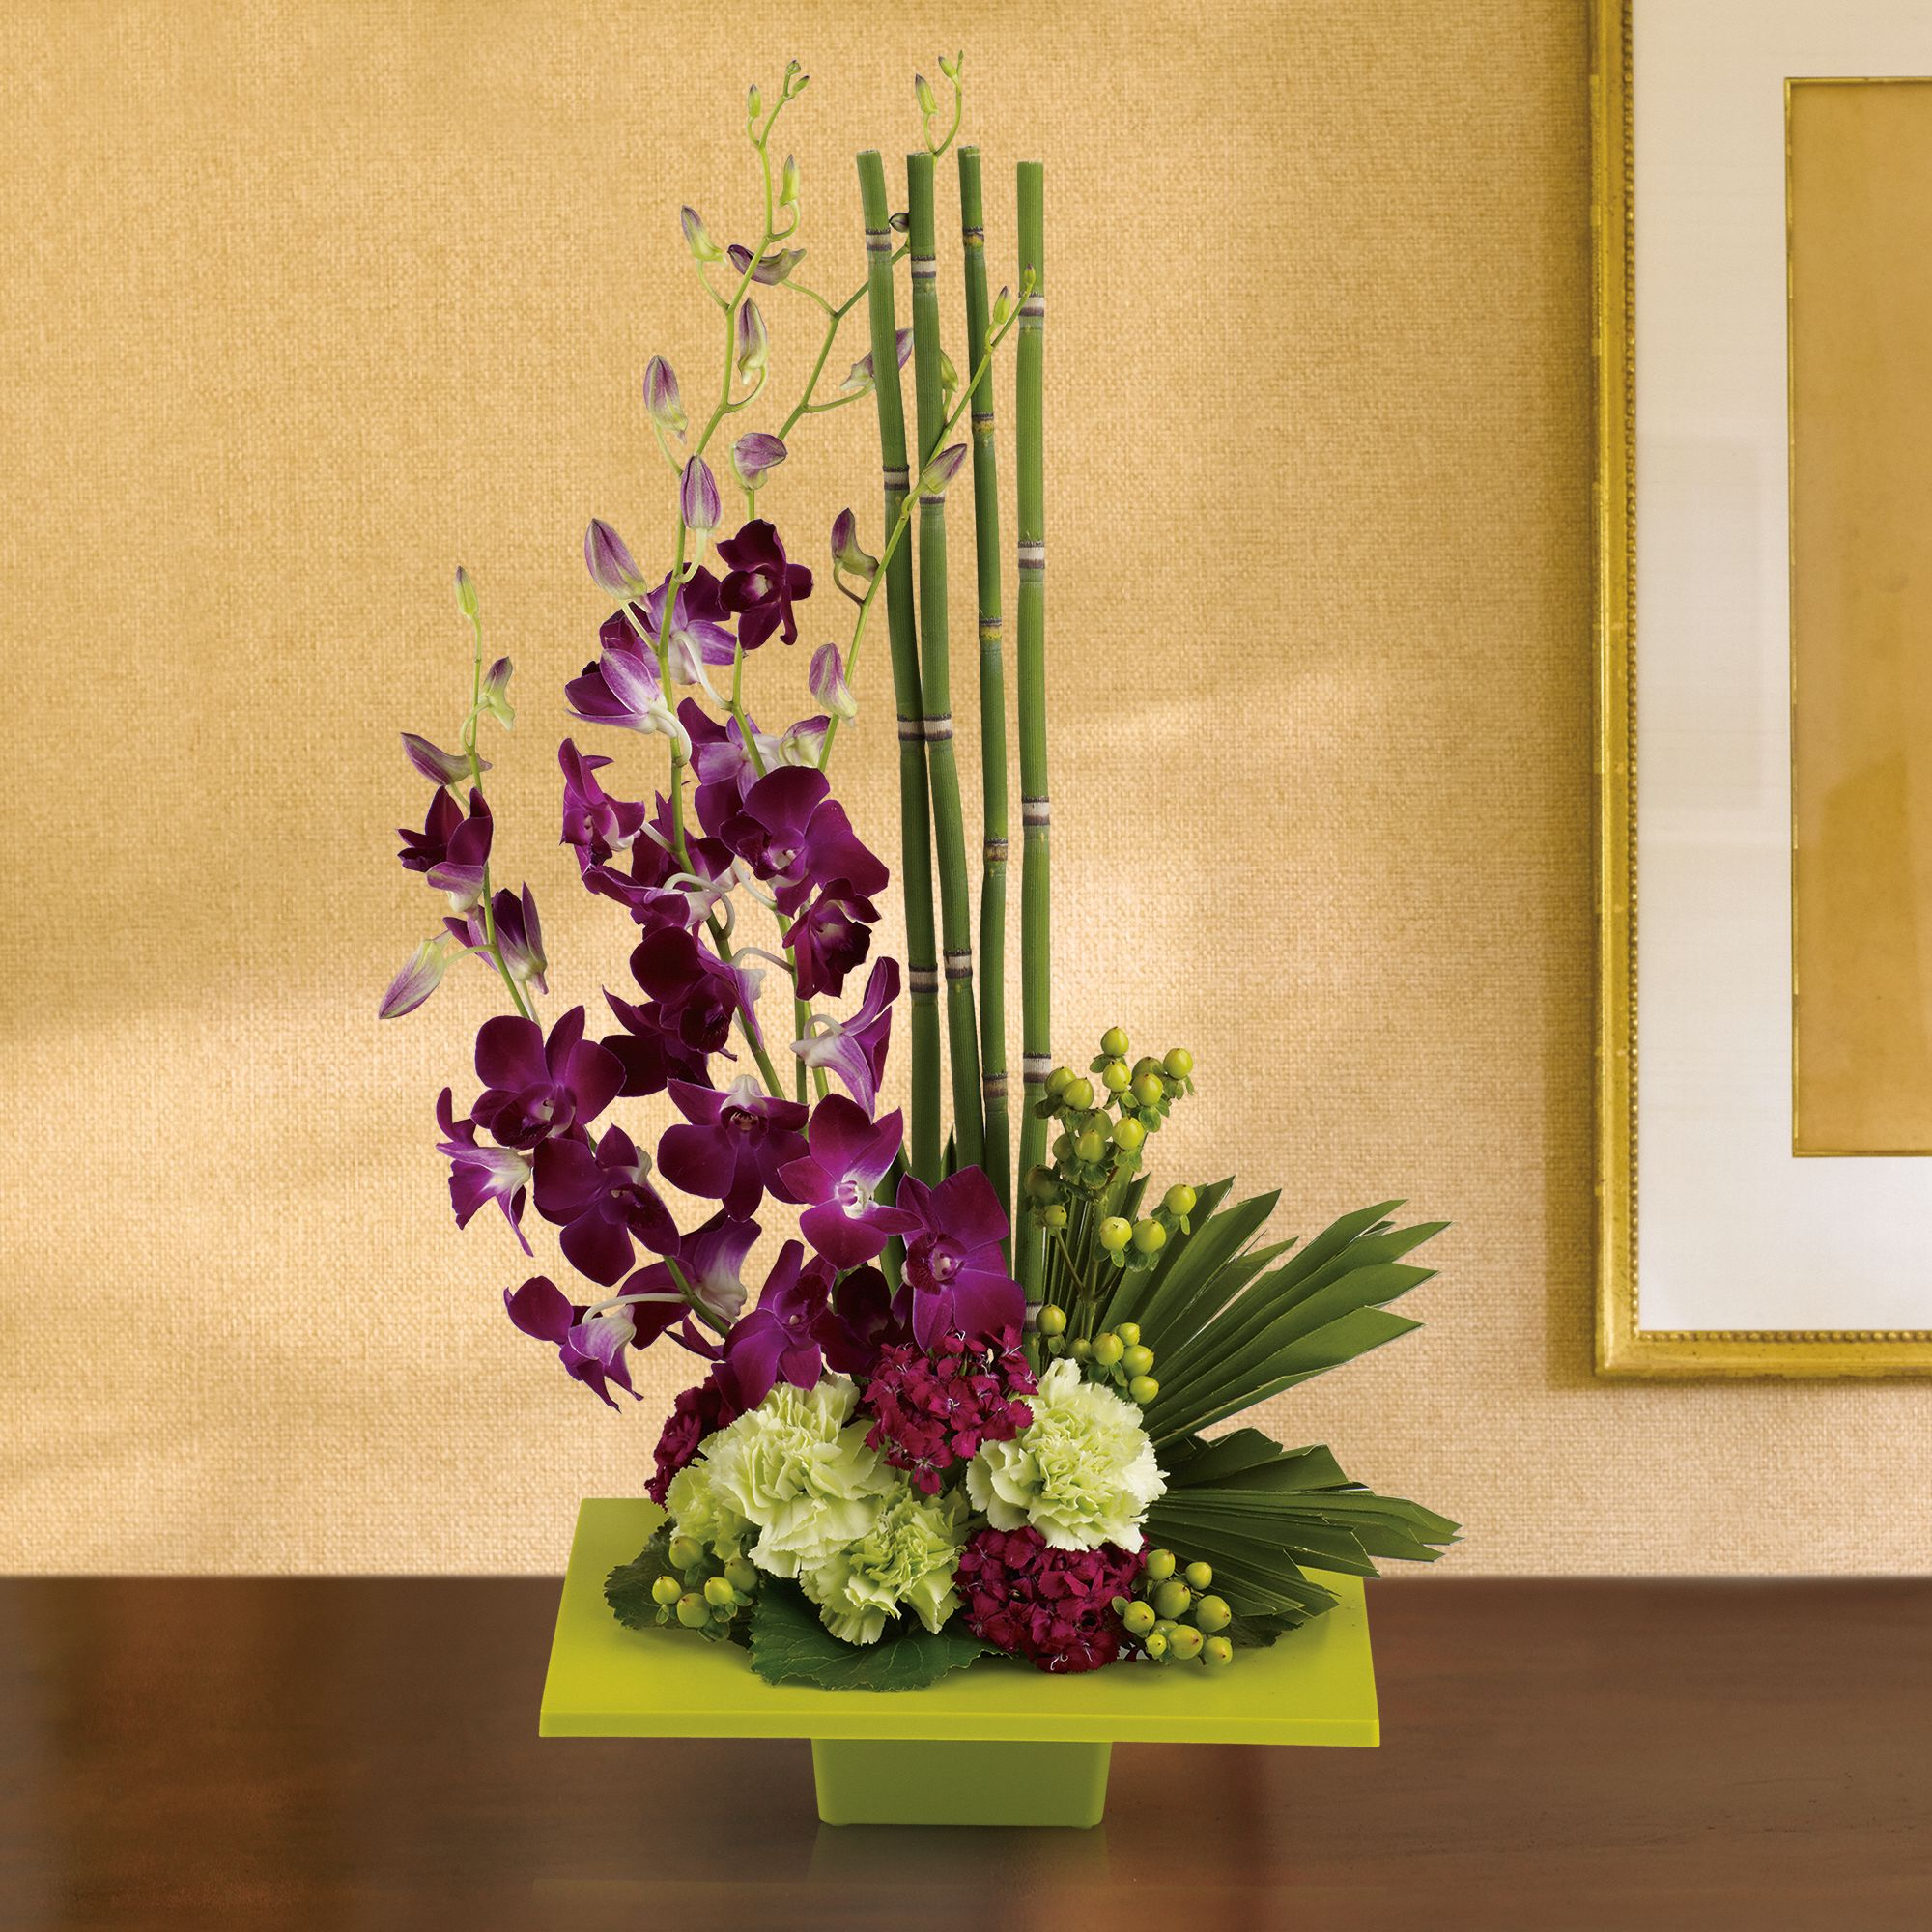 Zen Artistry - striking bouquet surprises with delicate purple orchids, mini bamboo and a colorful mix of blooms - sure to improve any room's feng shui.